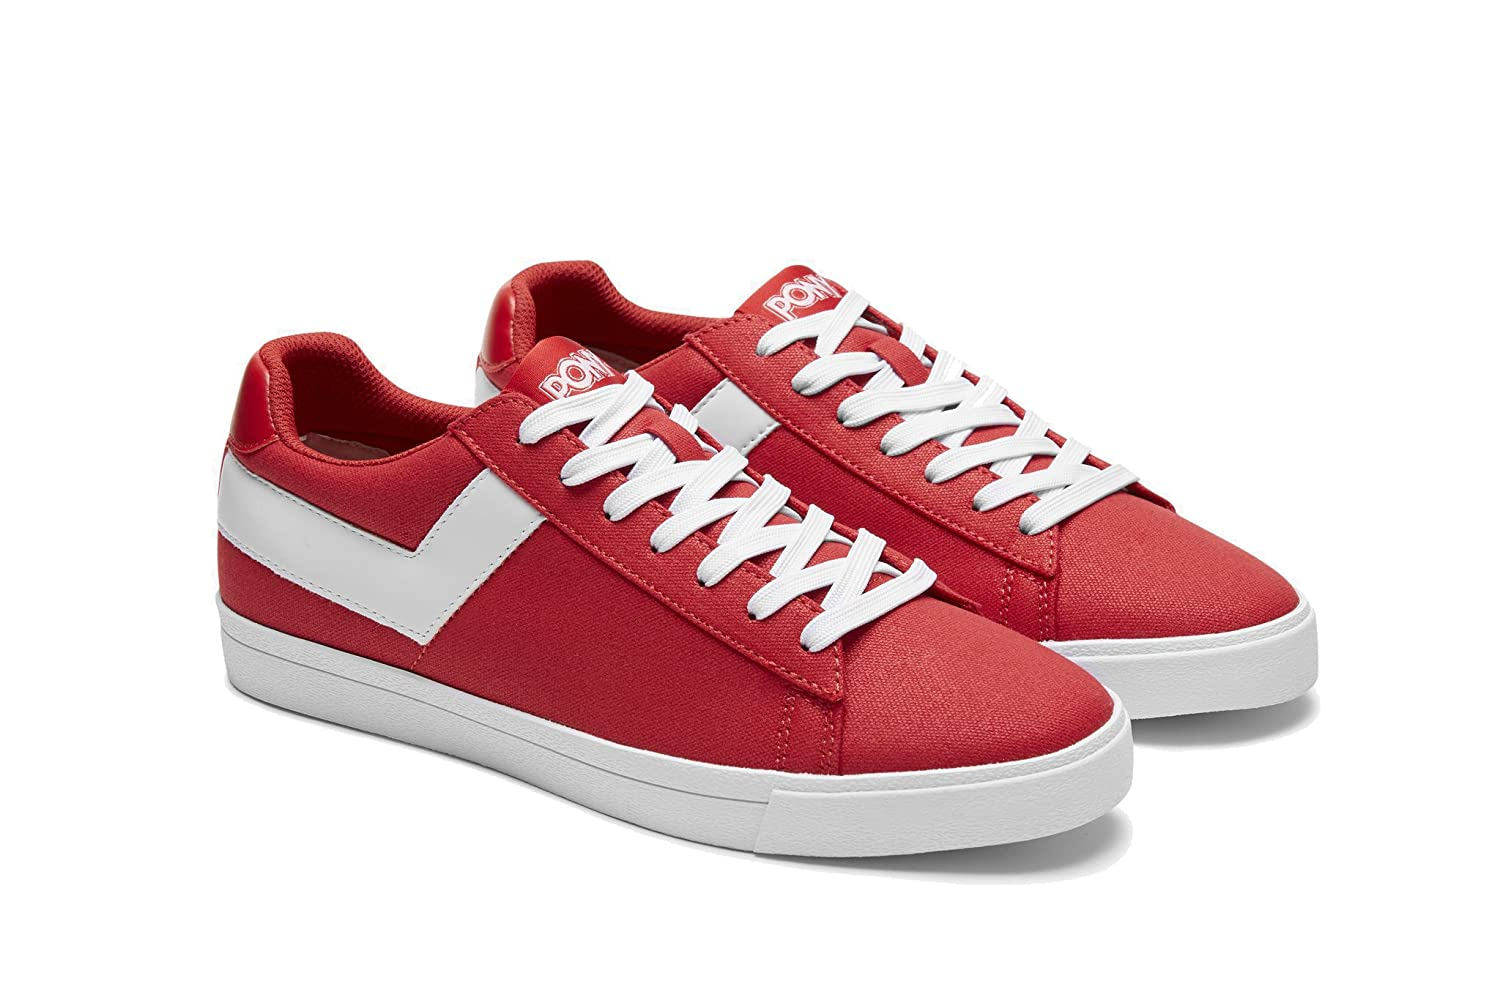 Pony Women's Top-Star-Lo-Core-Canvas Sneakers Shoes B07D1TPH34 6 B(M) US|Red White